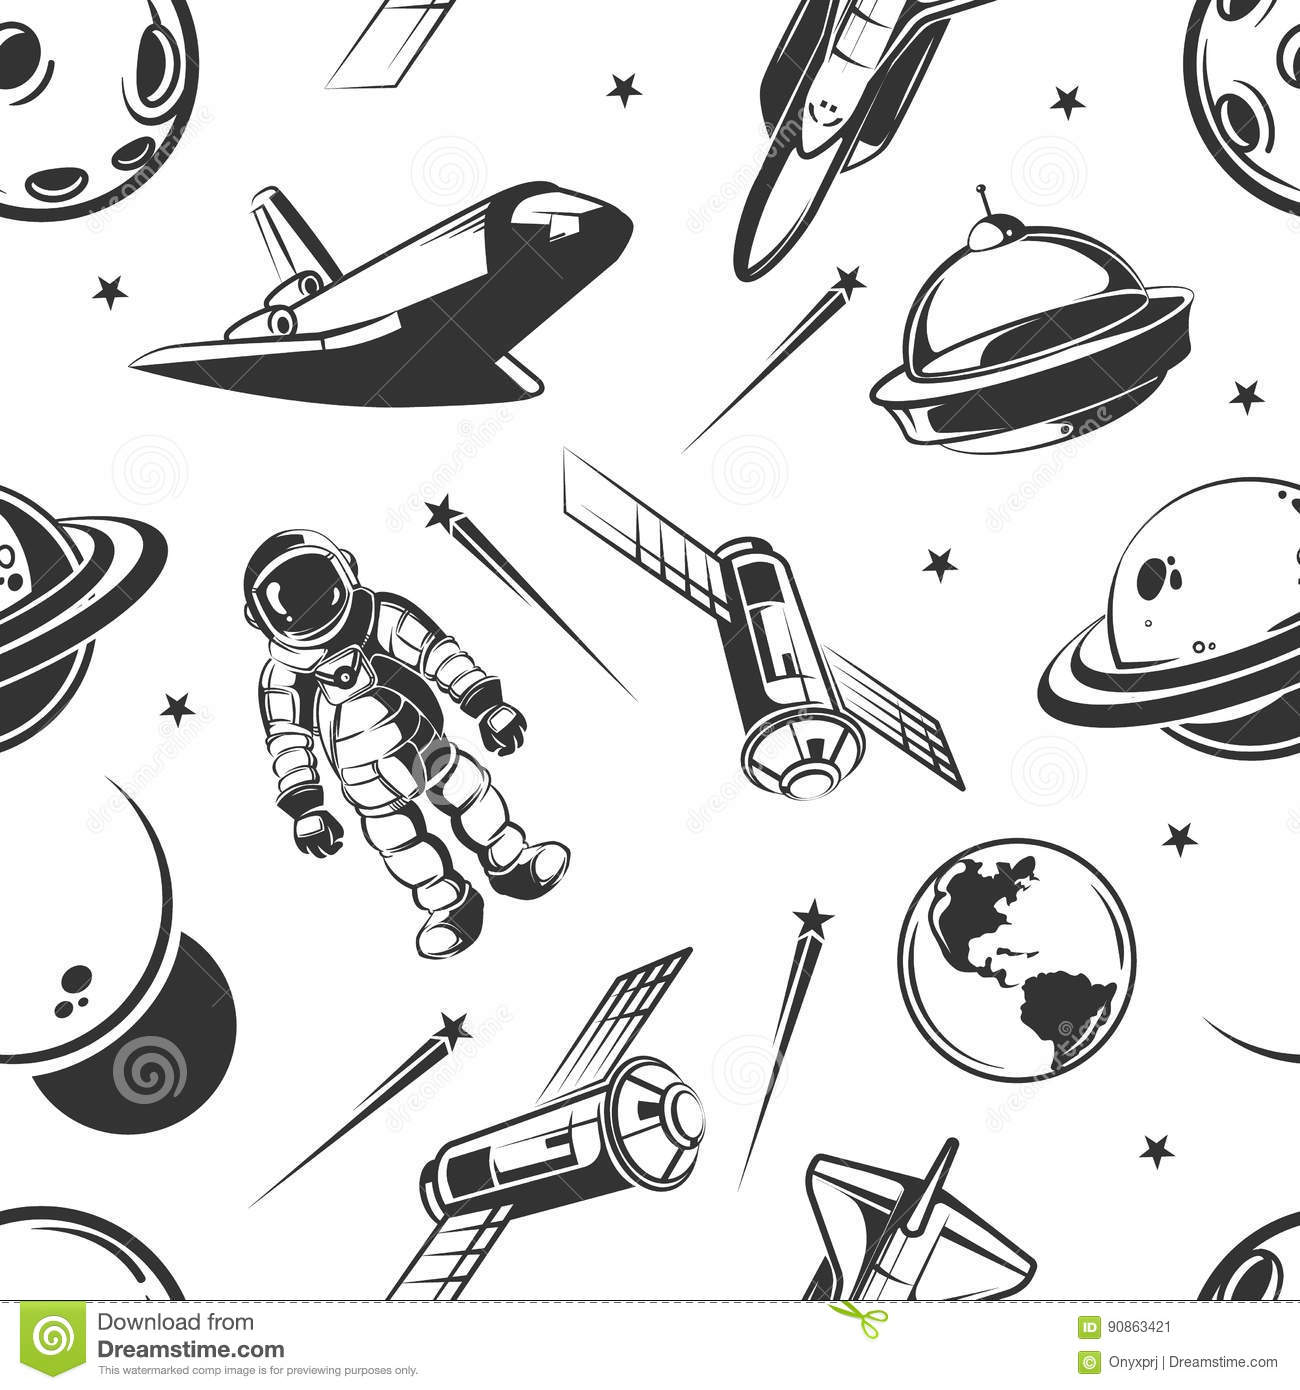 Astronaut space traveling vector seamless pattern in vintage style